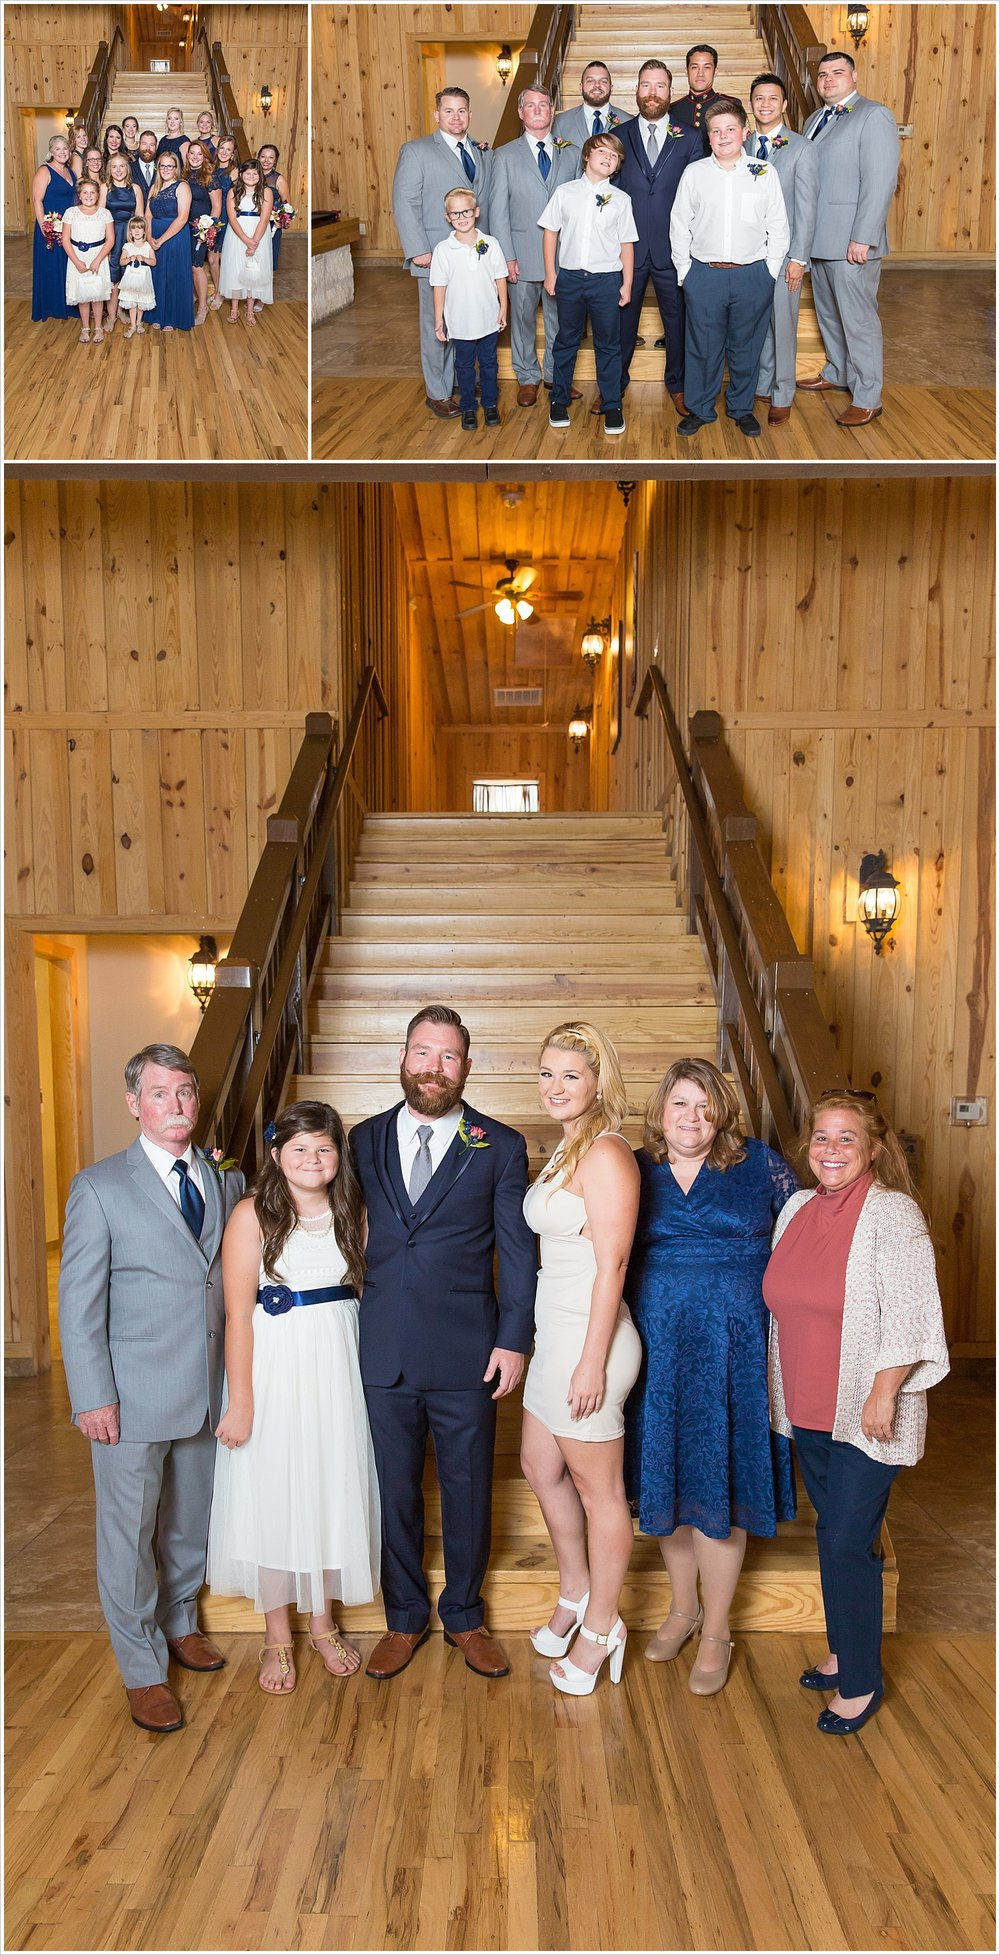 Groom poses with bridal party and family, summer blush and navy wedding at Stone Hall at The Springs in McKinney, Texas, Jason & Melaina Photography, www.jasonandmelaina.com